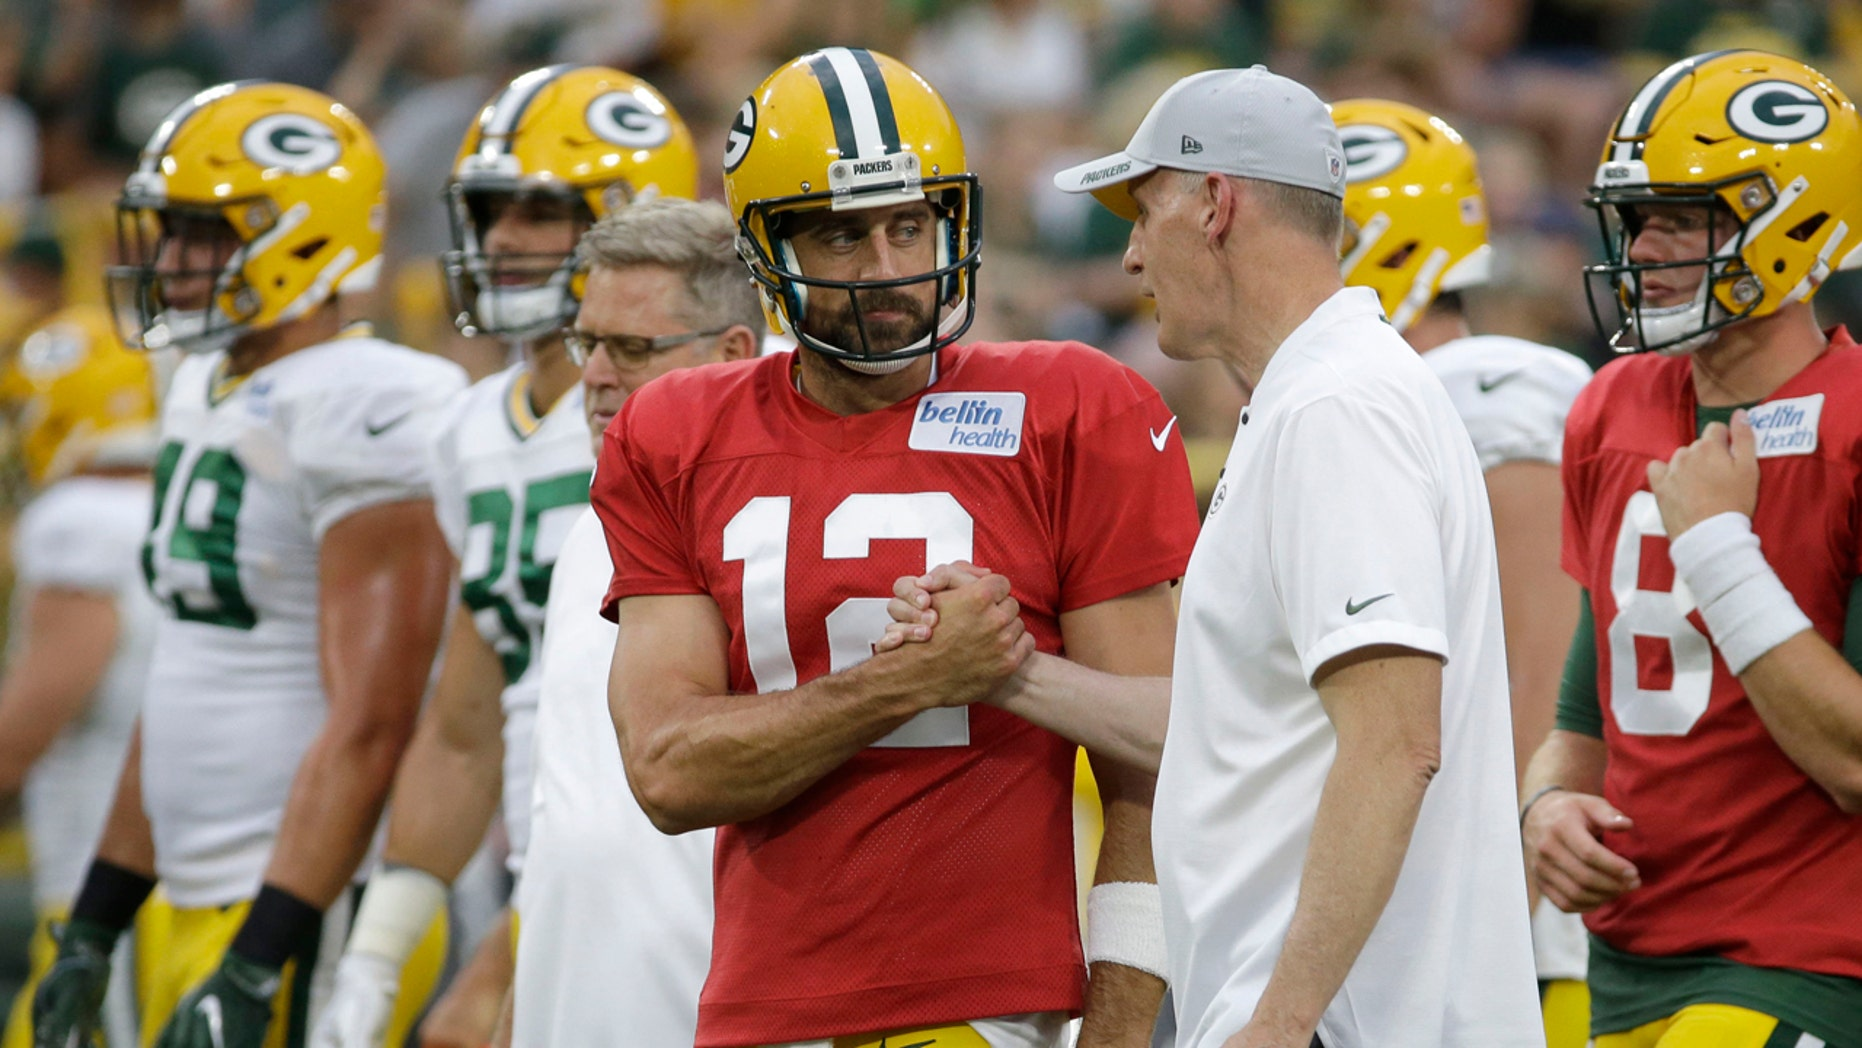 Green Bay Packers quarterback Aaron Rodgers shakes hands with new offensive coordinator Joe Philbin during the NFL football team's Family Night practice Saturday, Aug. 4, 2018 in Green Bay, Wis.